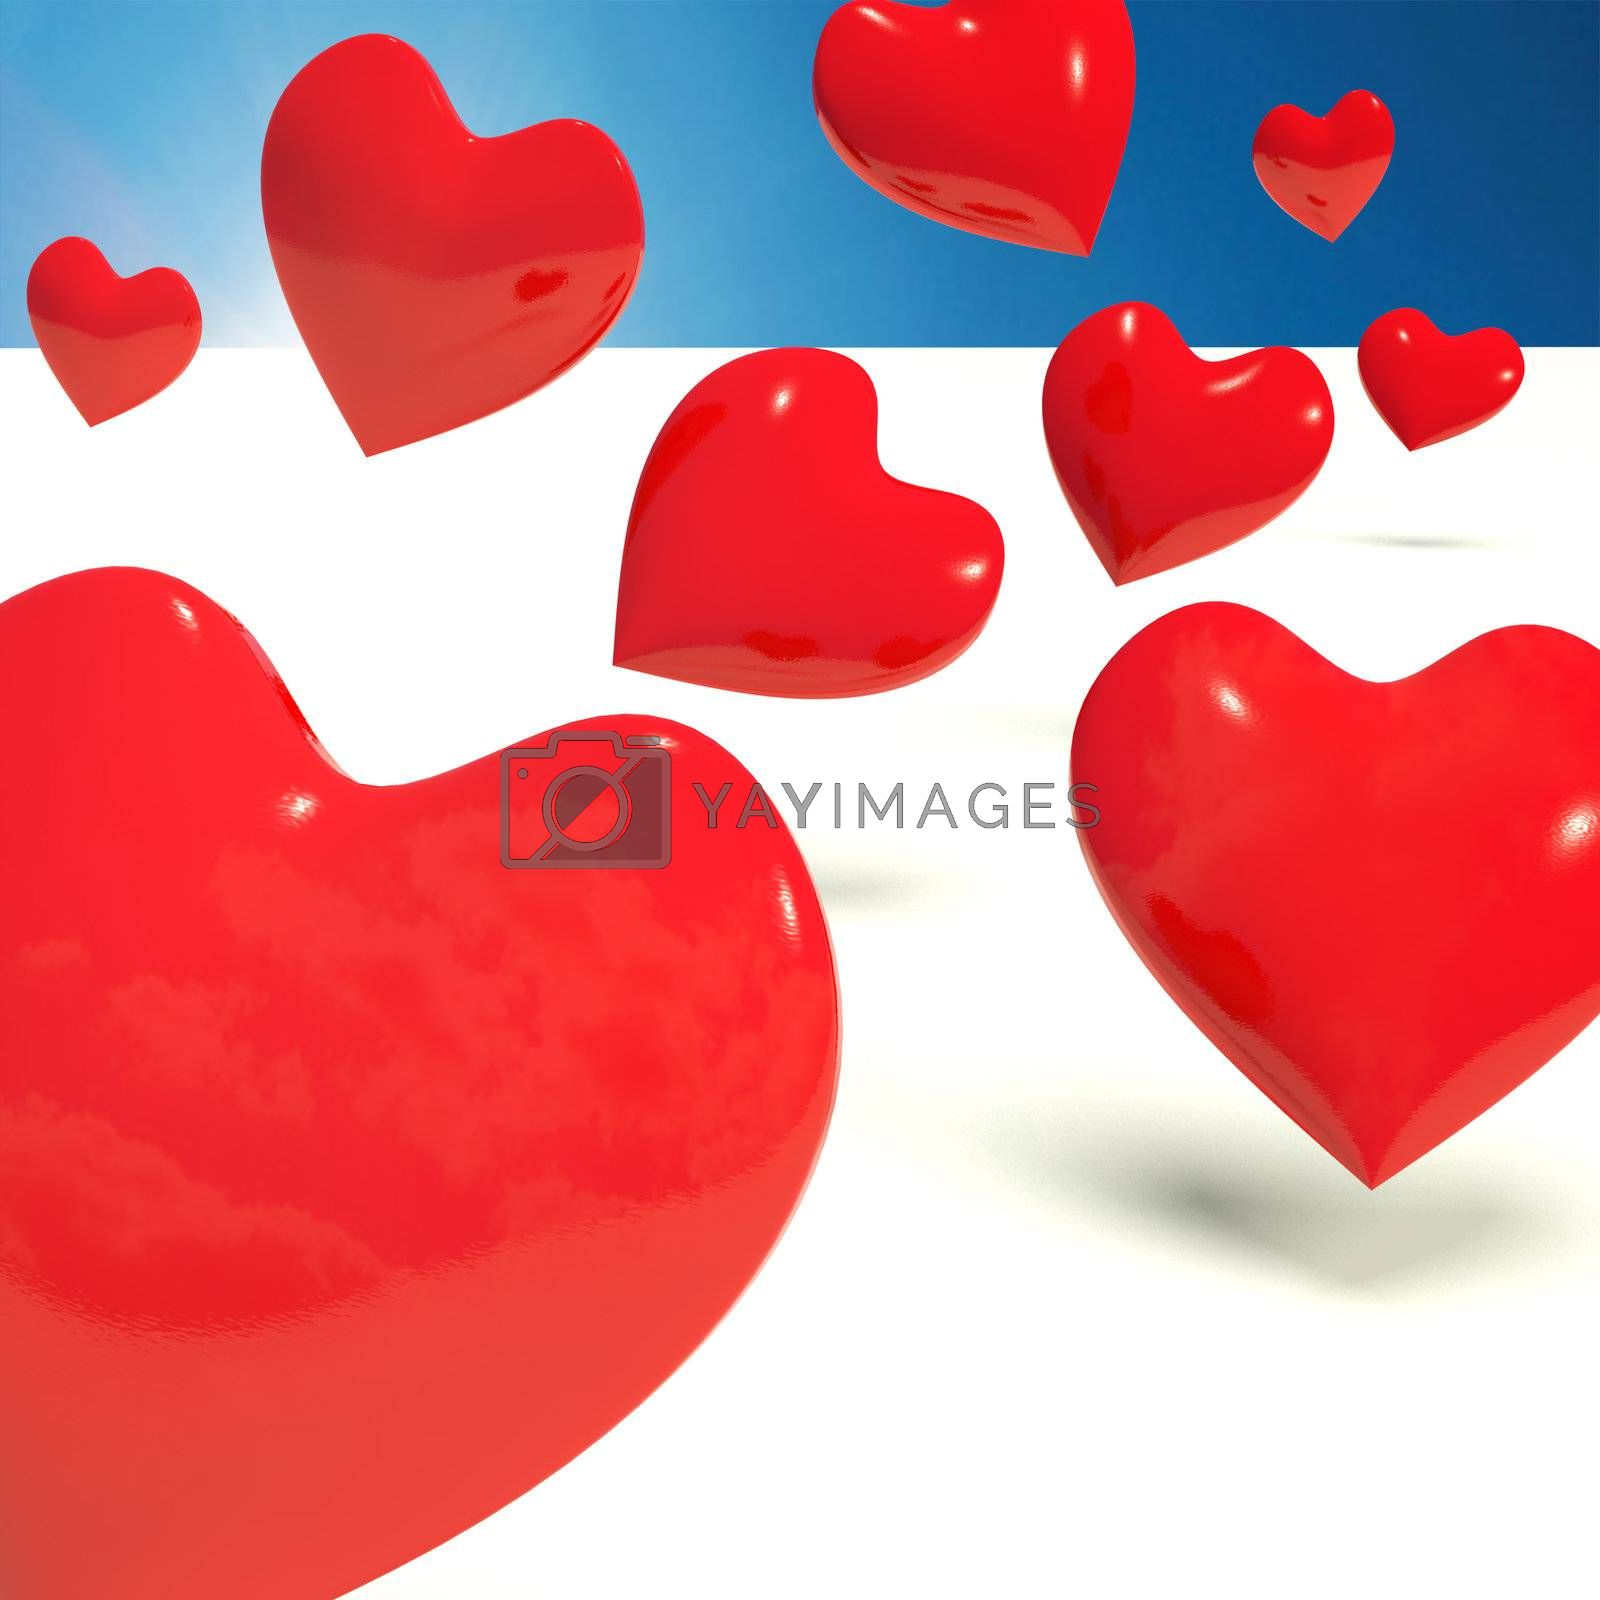 Falling Red Hearts Representing Love And Adoration